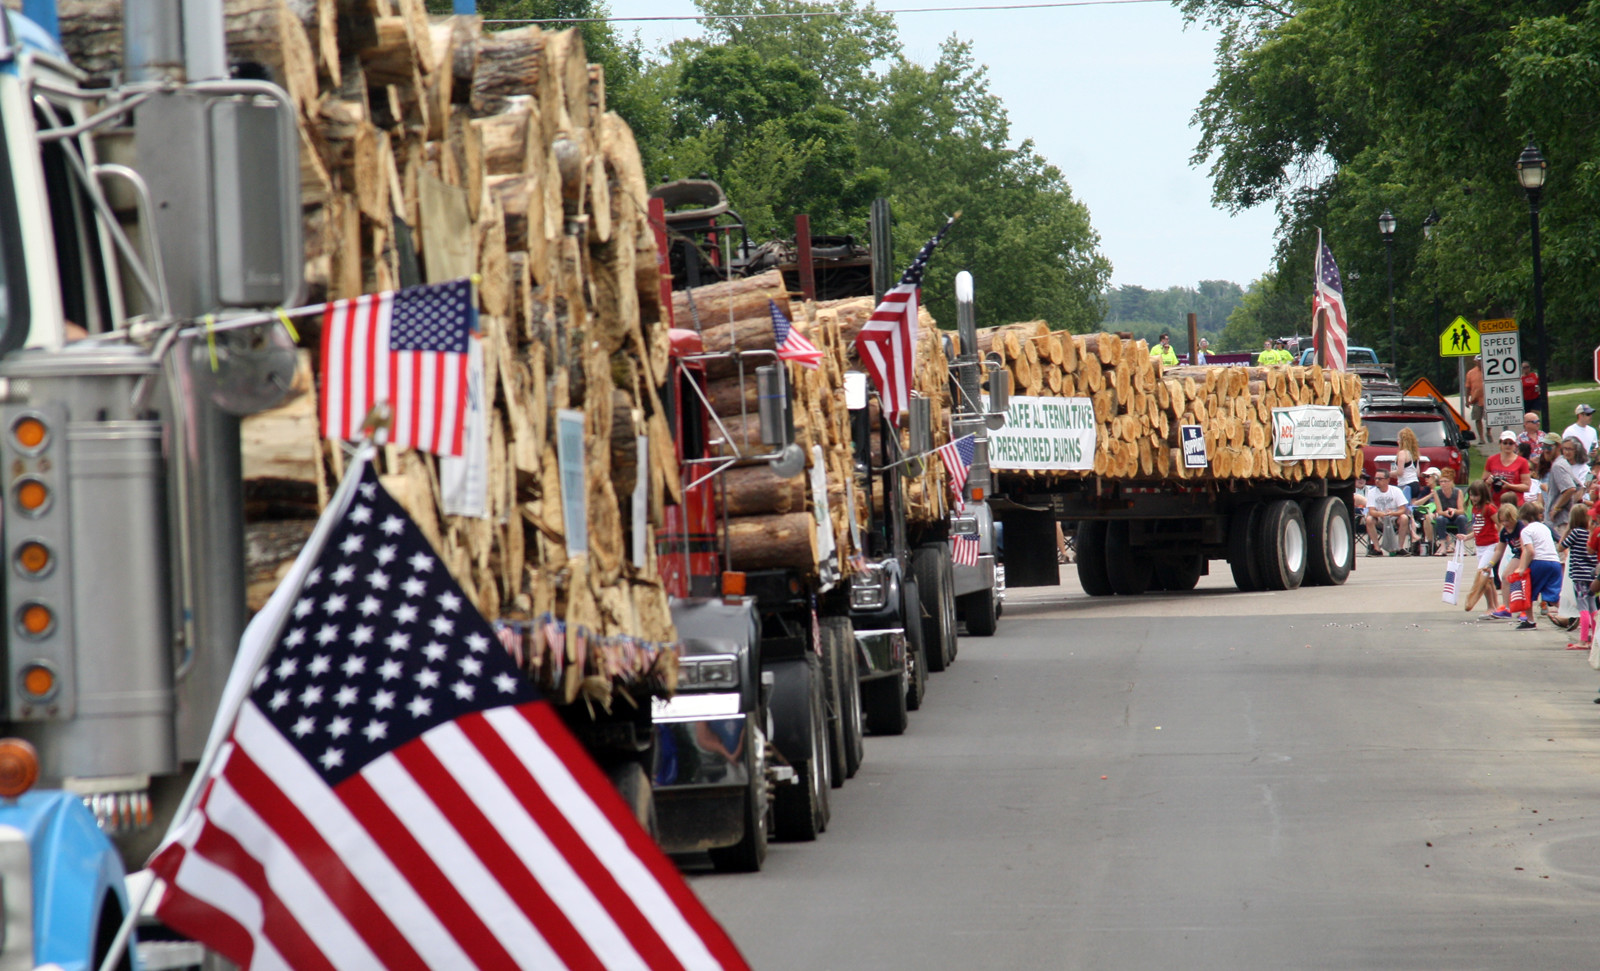 Lots of logging trucks in the Ely parade